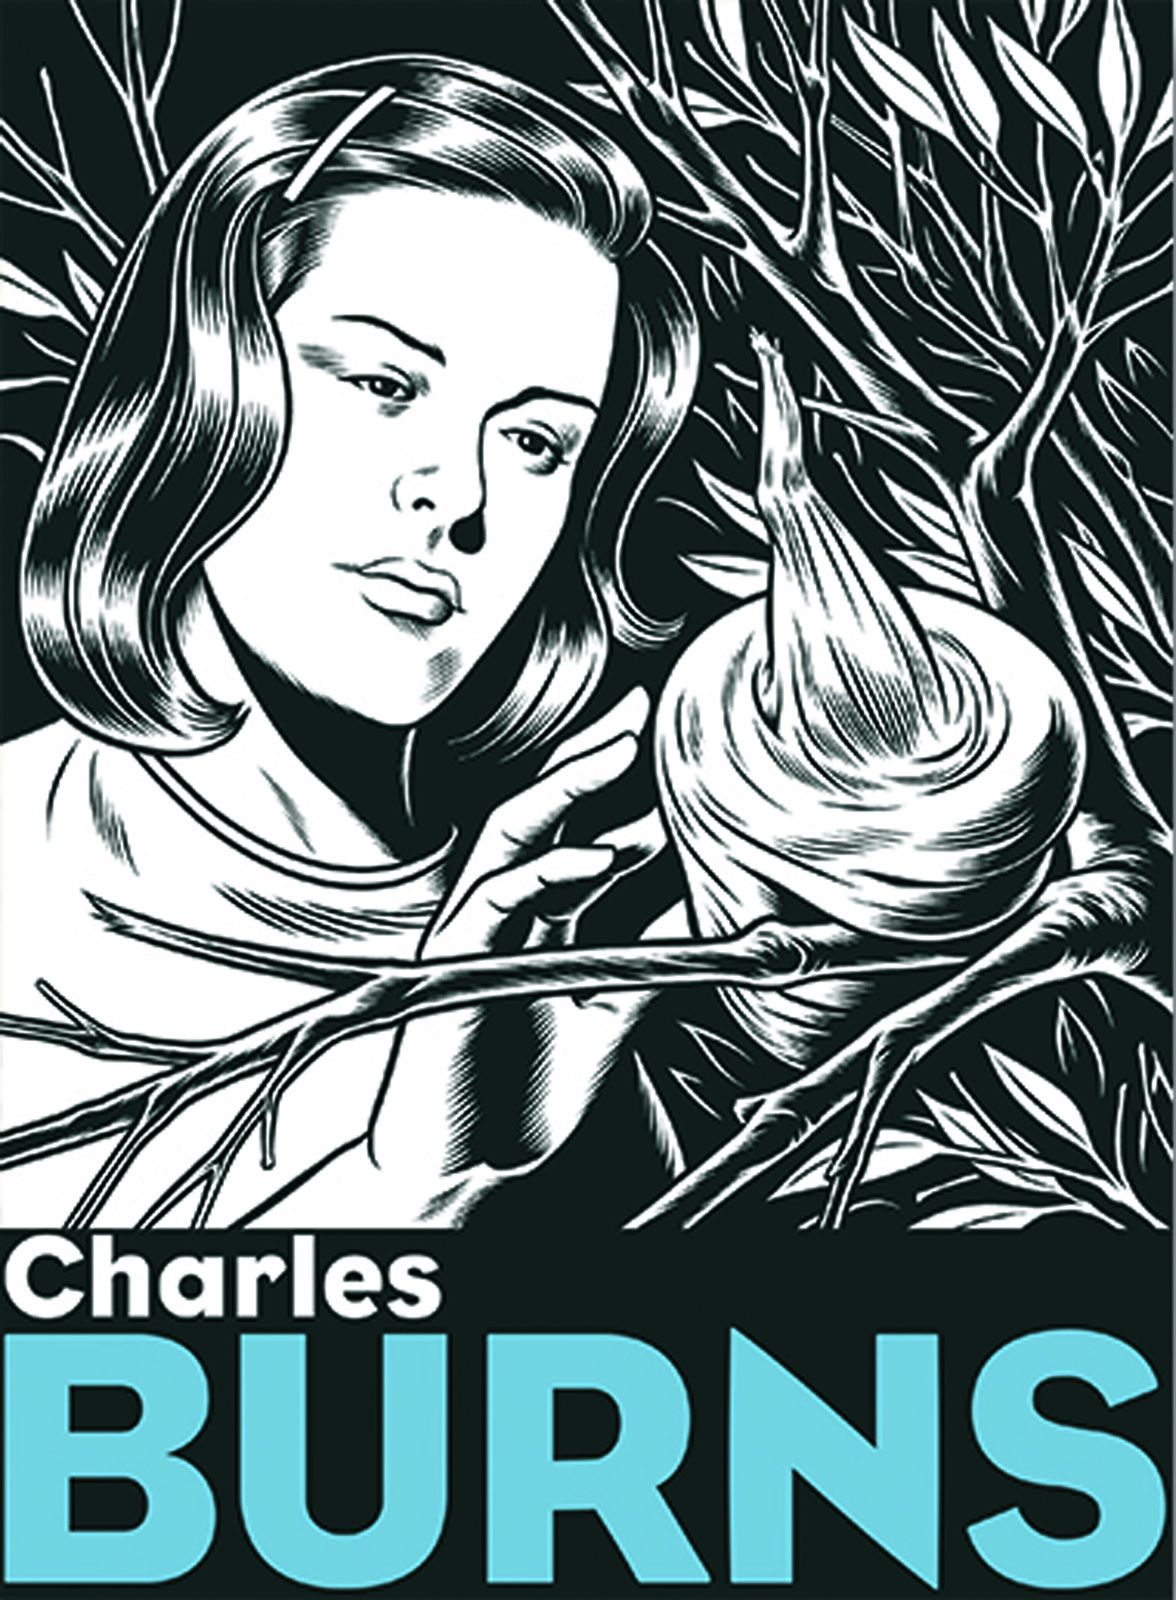 Expo Illustration Contemporaine: Charles BURNS